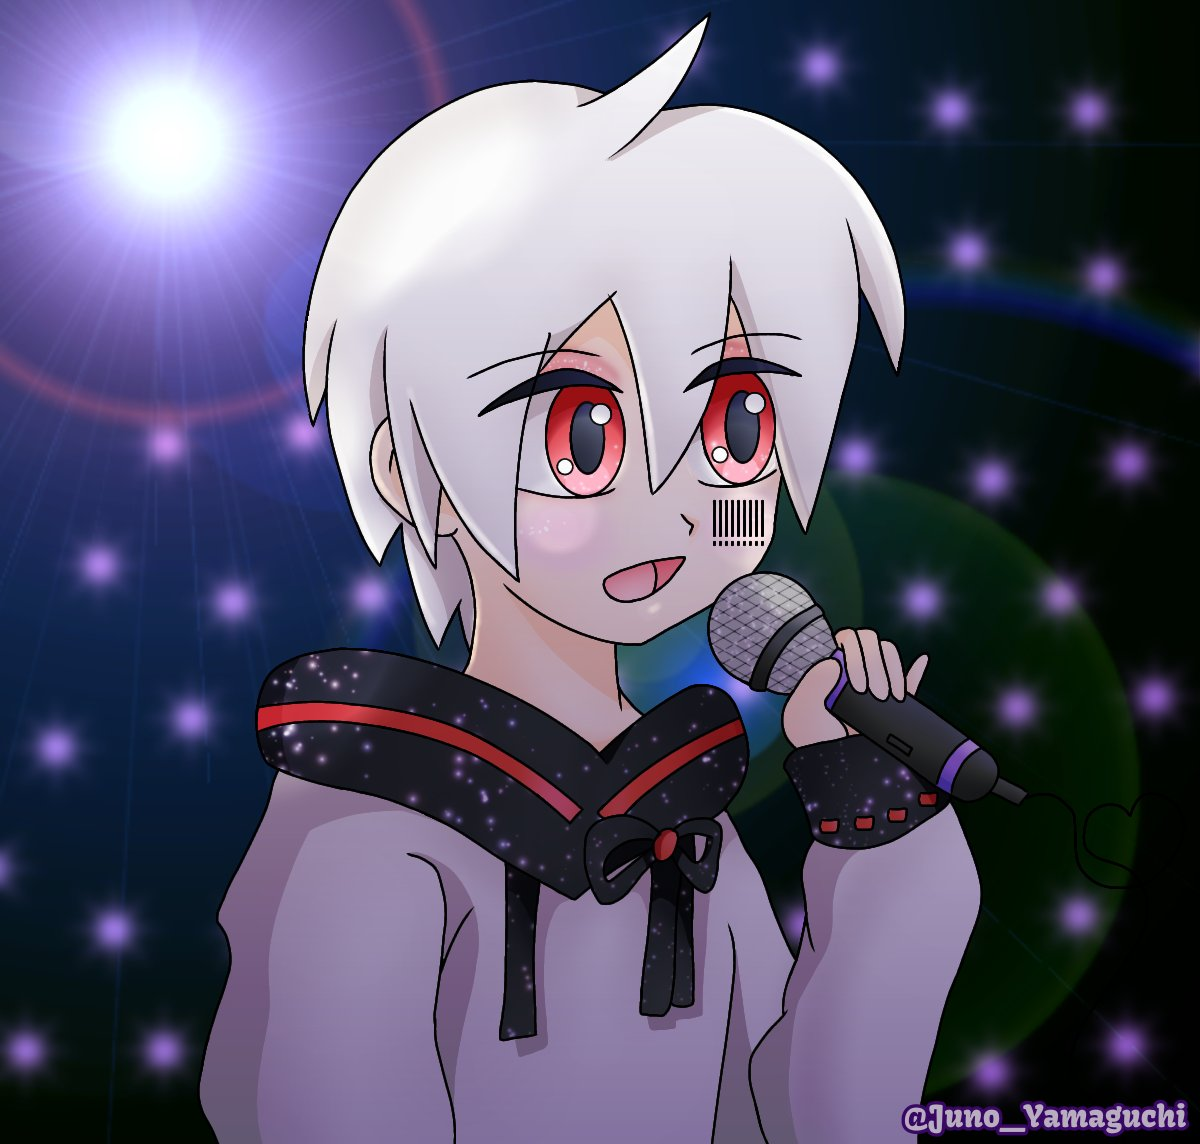 I drew my favorite moment from the Mafumafu's concert. I love his music. Receive my support always. 💖💖  #mafumafu #utaite #drawing #まふまふ #まふまふ東京ドーム前夜祭 #まふまふ東京ドーム #まふあーと